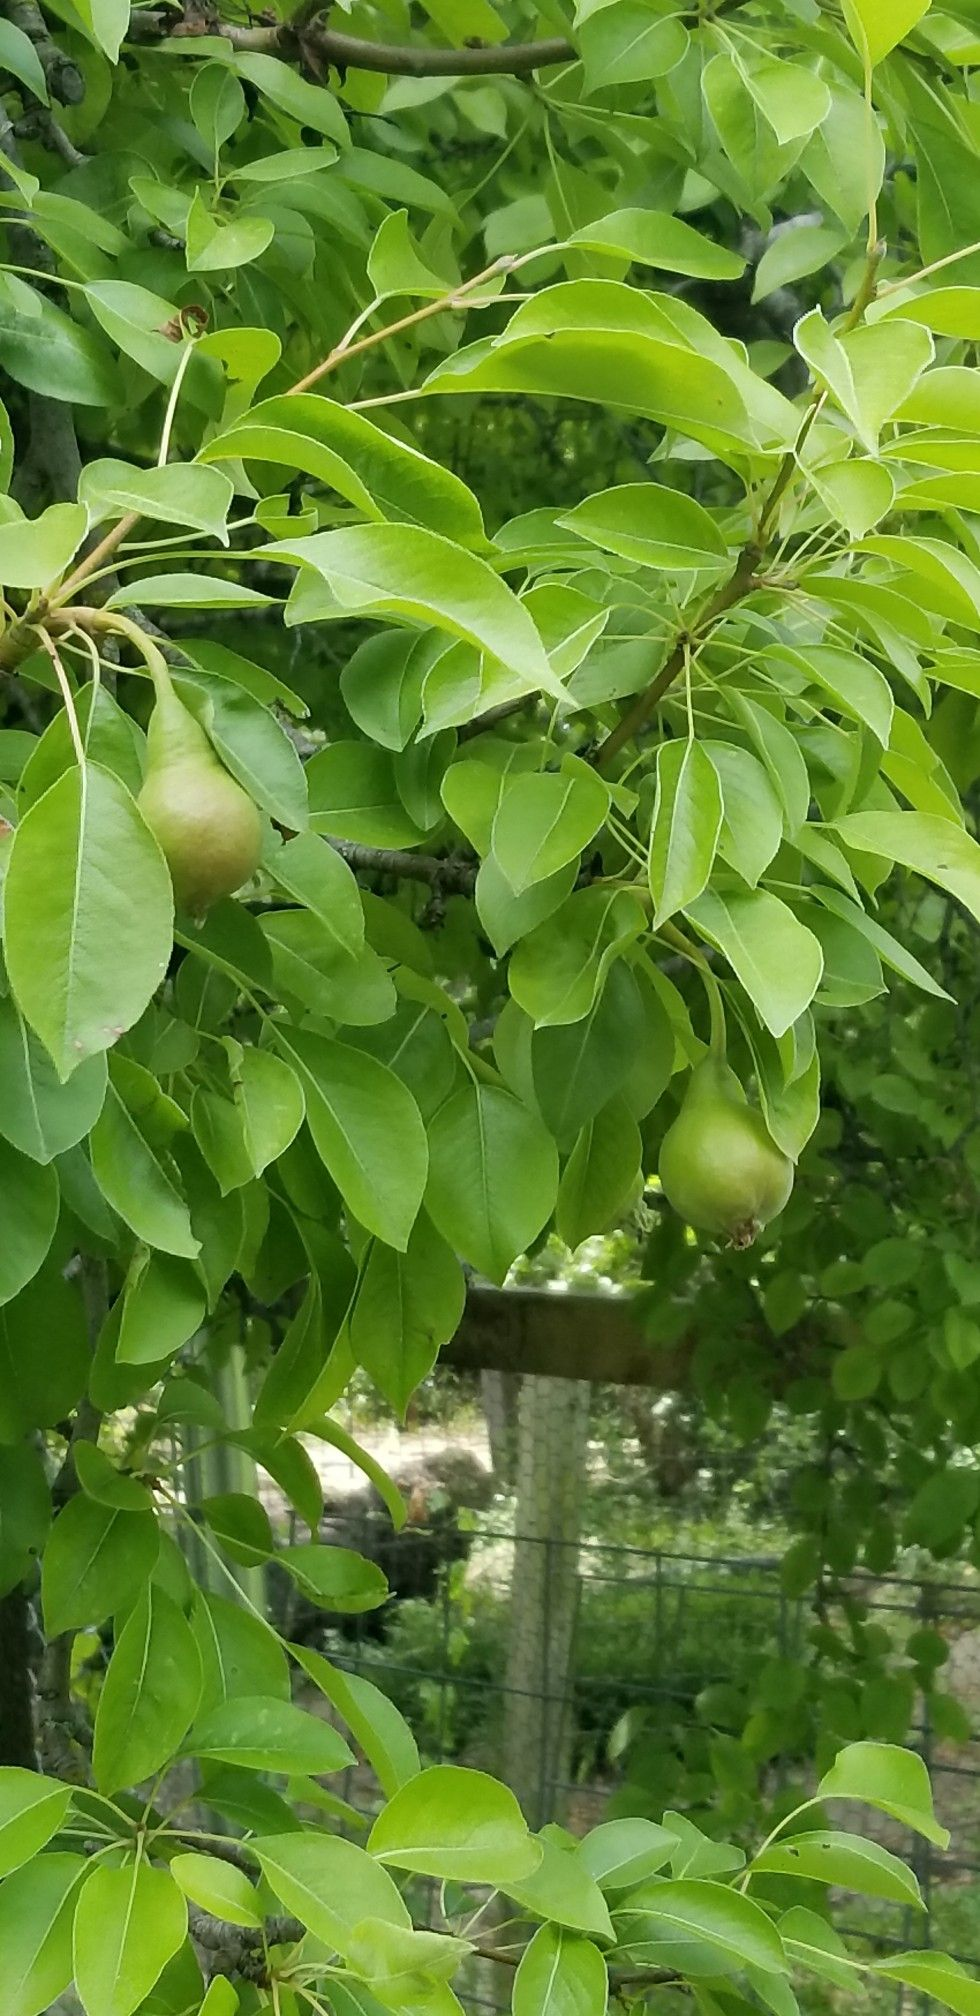 The Pears Are Looking Good